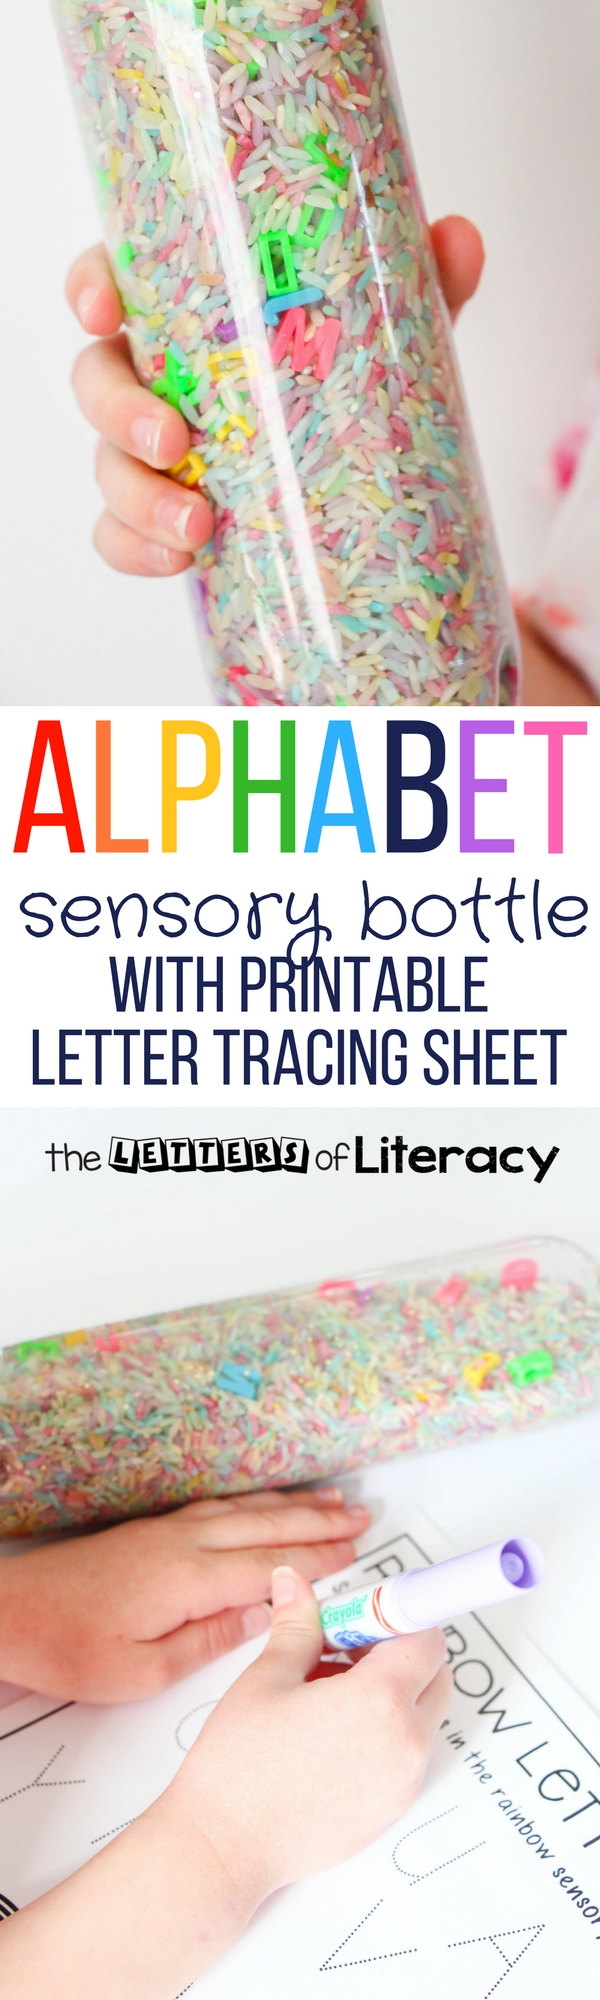 Your kids will love this bright and colorful alphabet sensory bottle! It even comes with a free letter tracing printable to record the letters you find. It's such a fun, hands-on literacy center for Pre-K and Kindergarten!